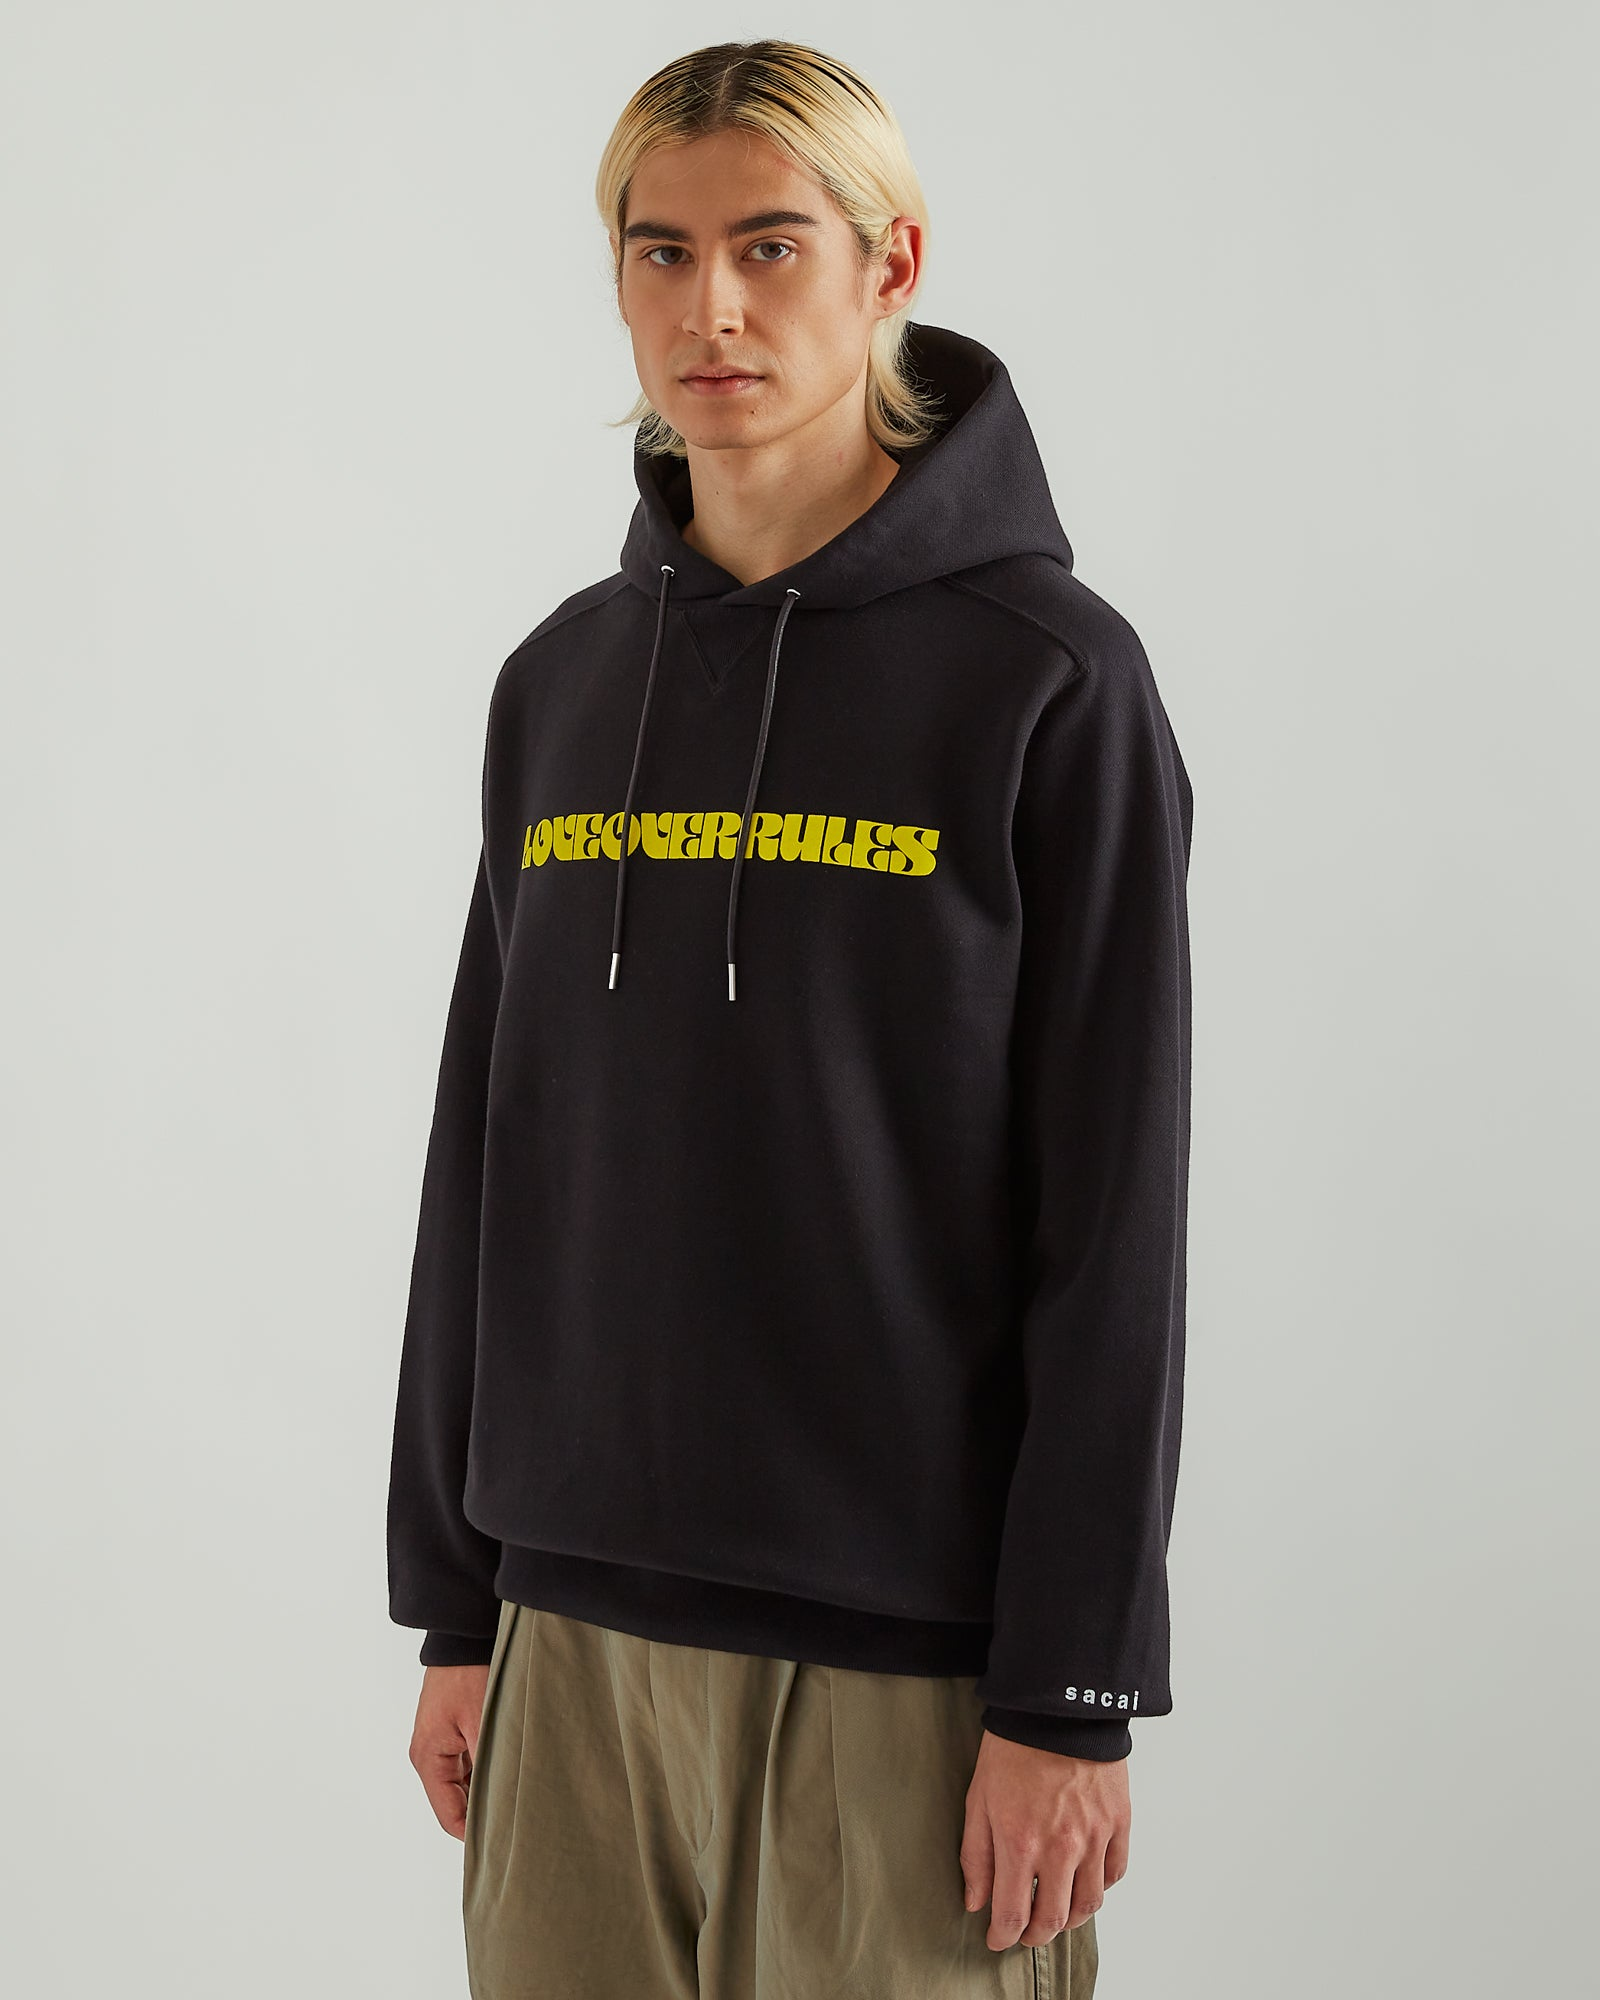 Love Over Rules Hoodie in Black